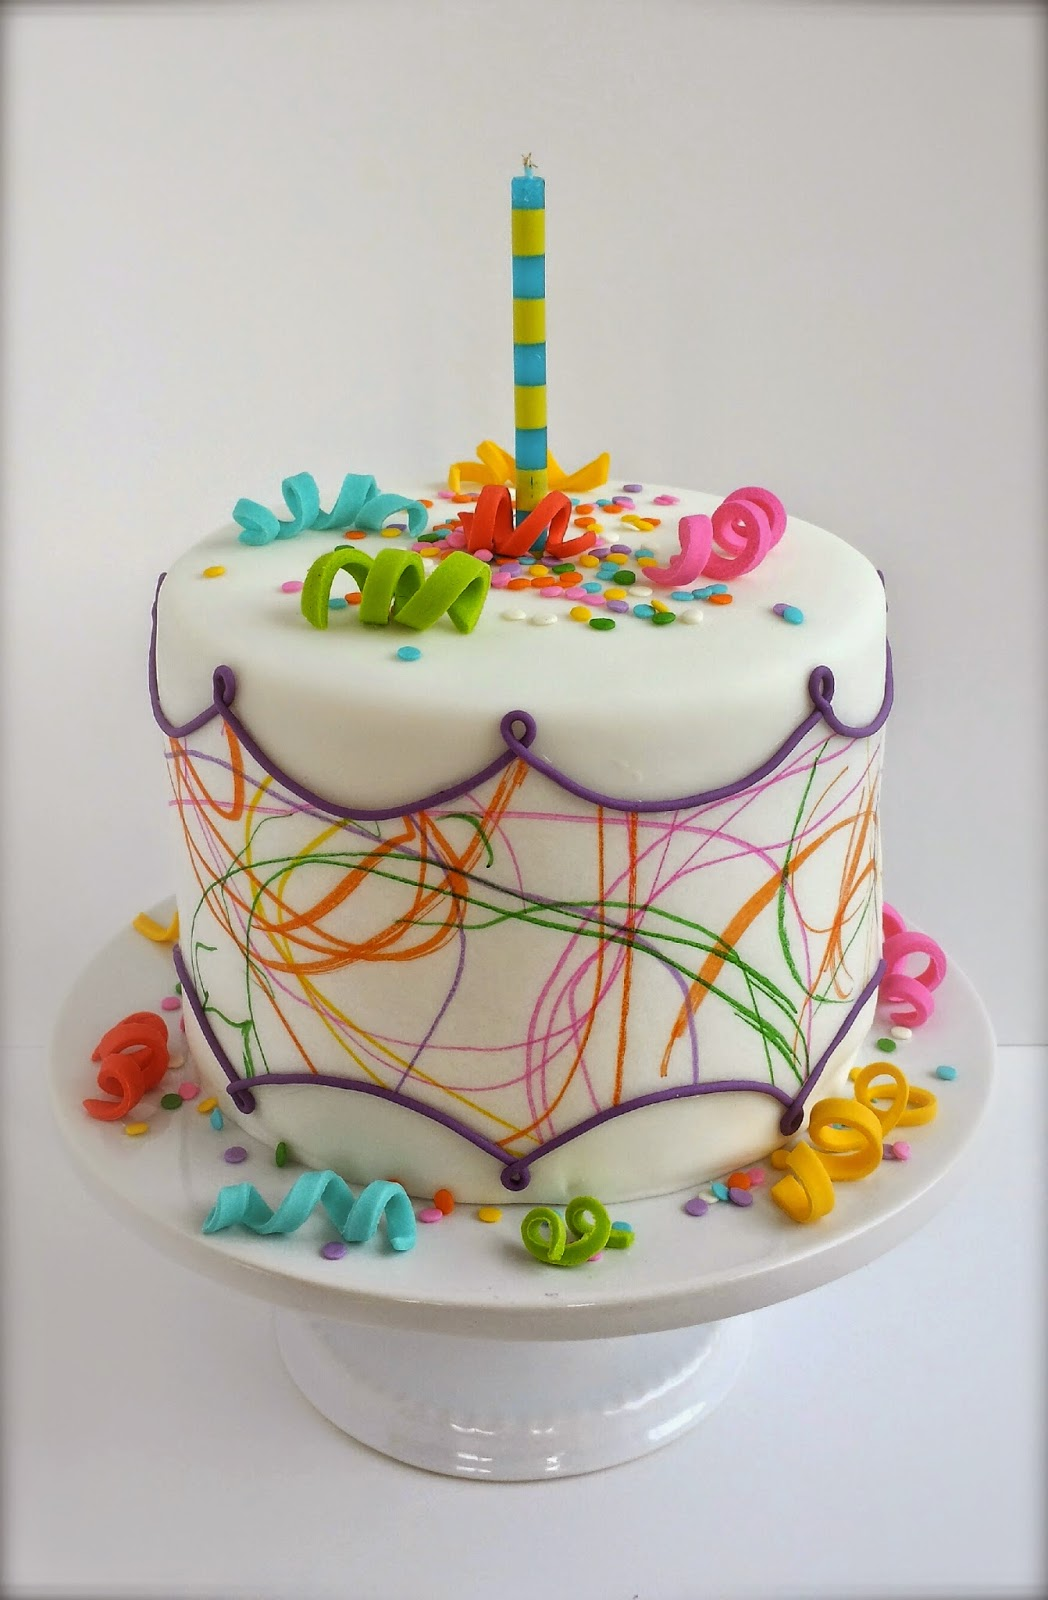 Toddler Art Cake